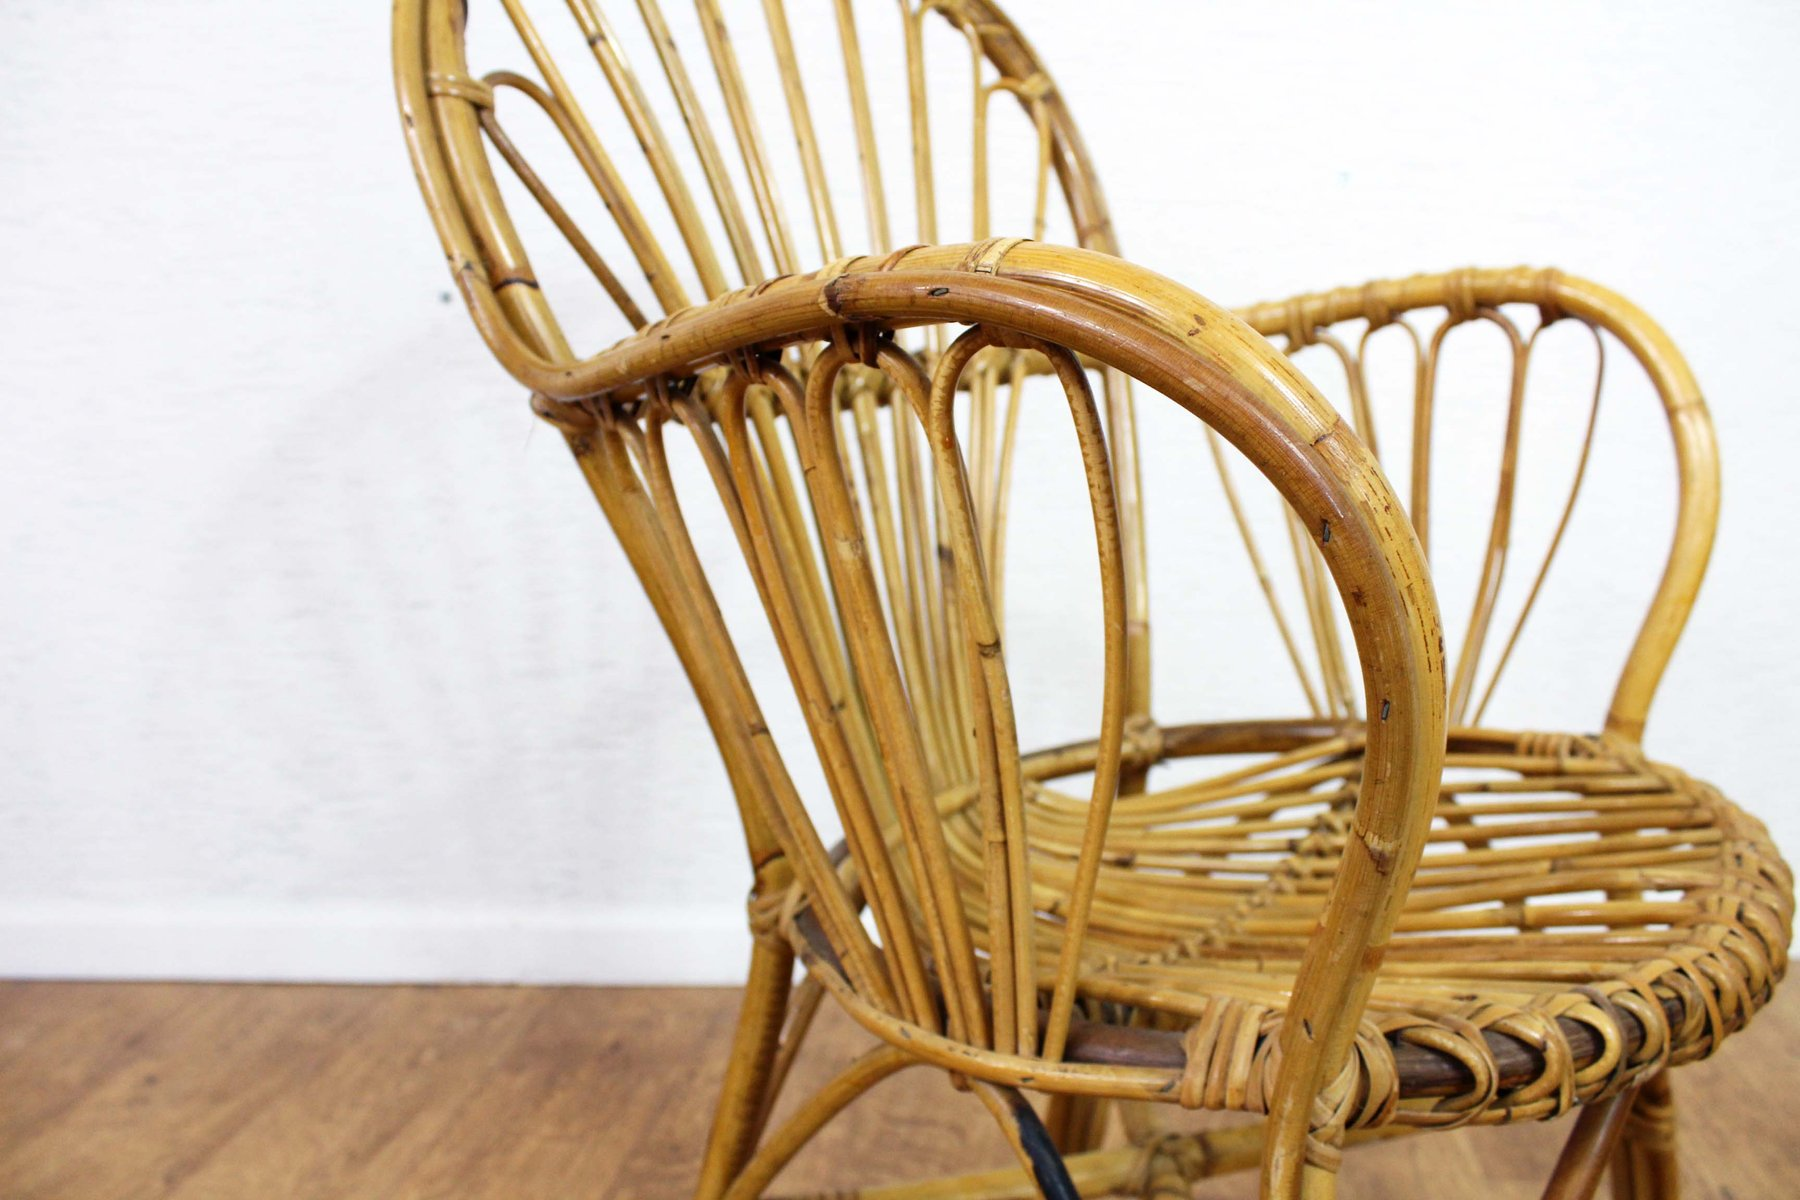 Vintage Rattan Chairs Vintage Rattan Chairs Set Of 4 For Sale At Pamono